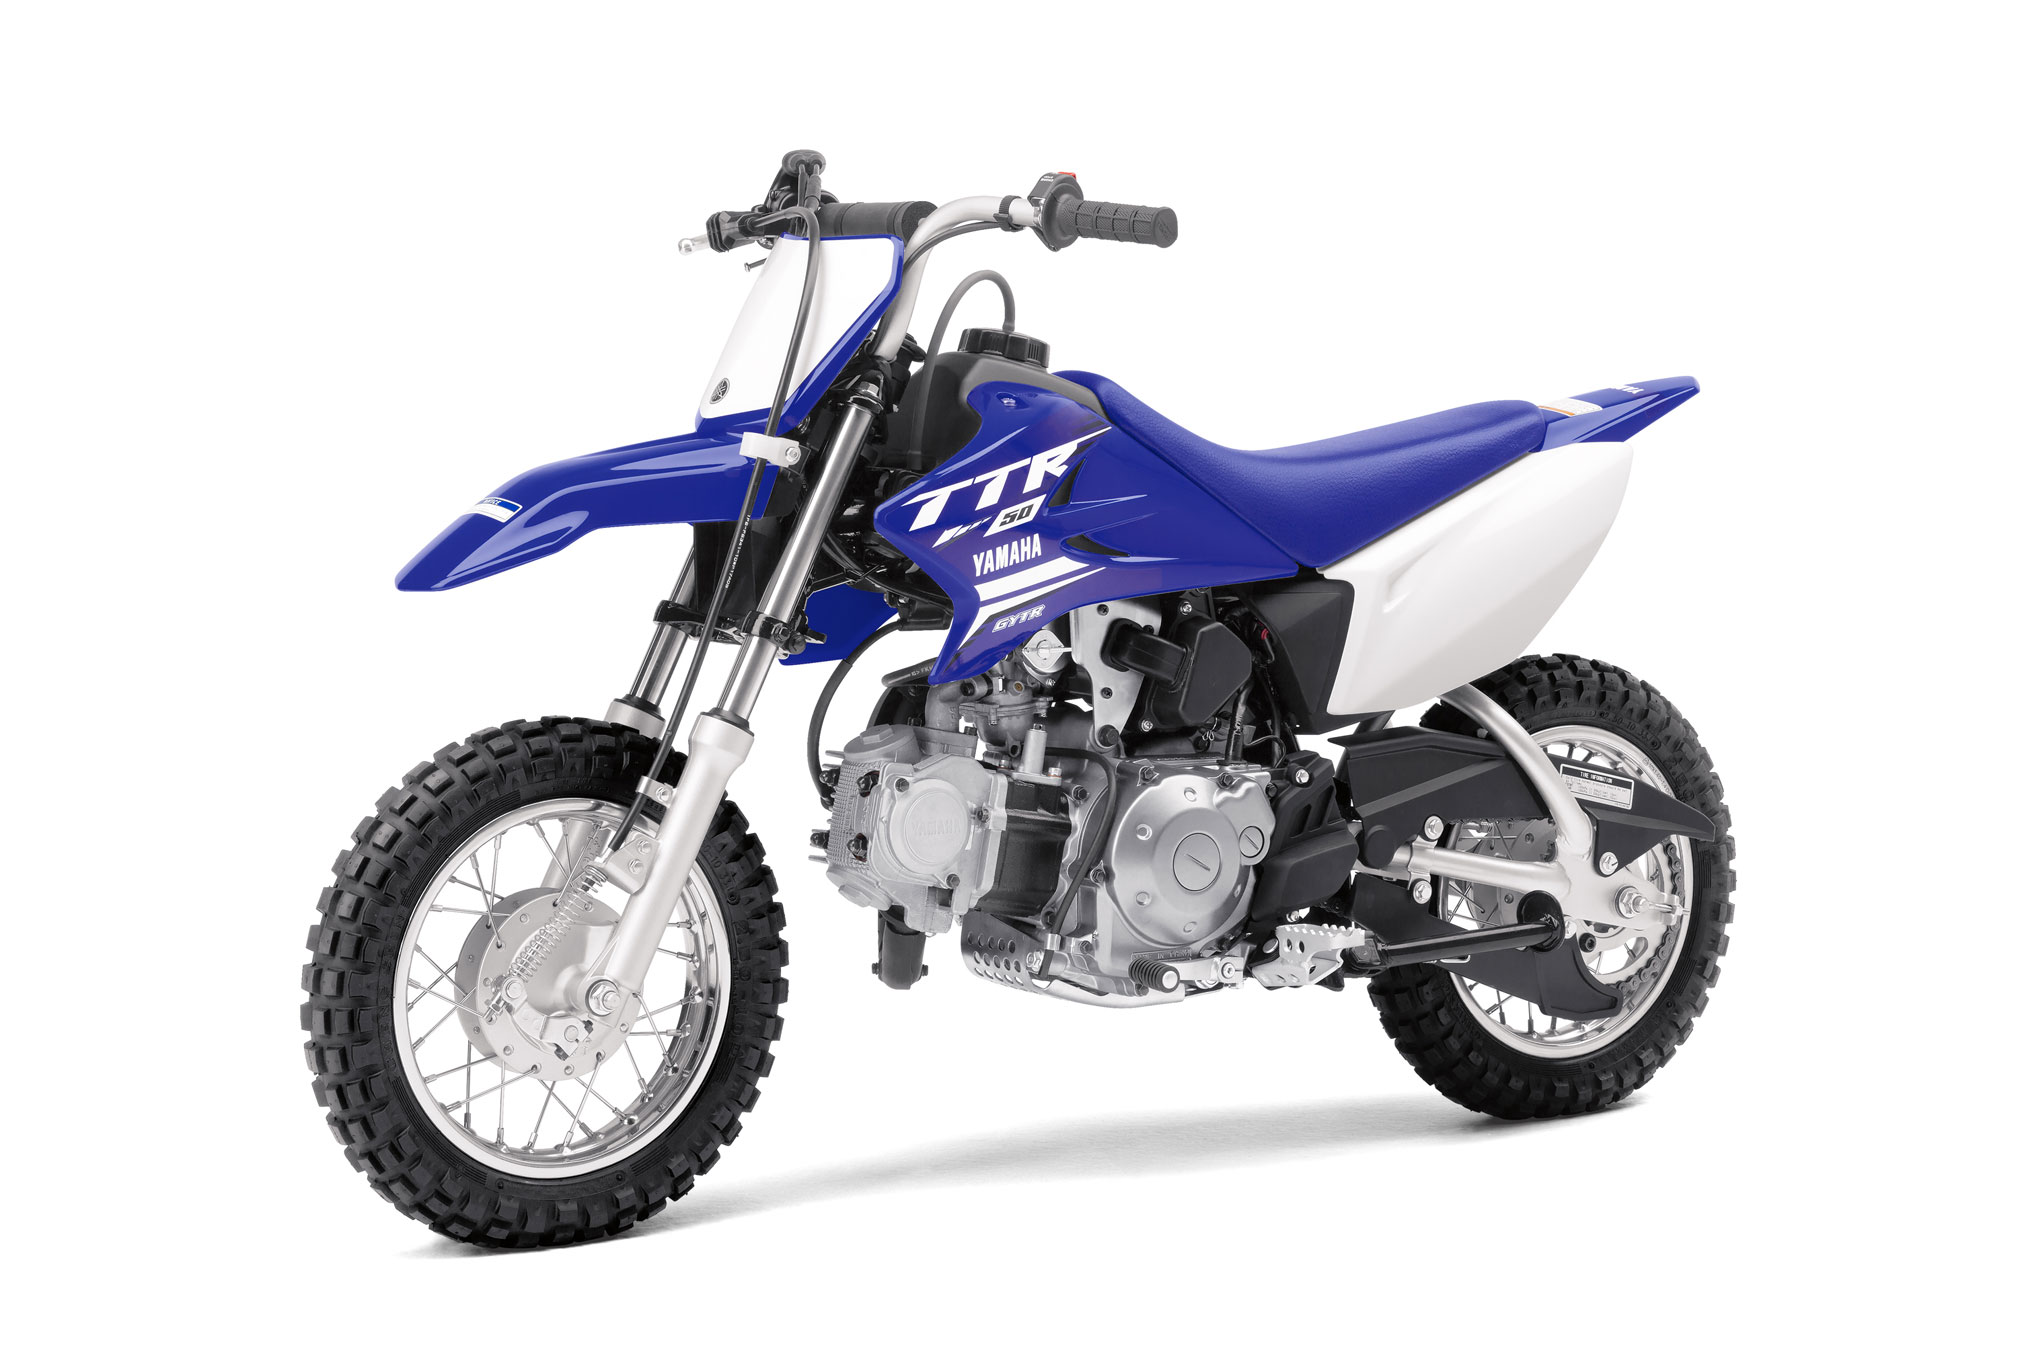 2018 yamaha tt r50e review totalmotorcycle for Yamaha new motorcycles 2018